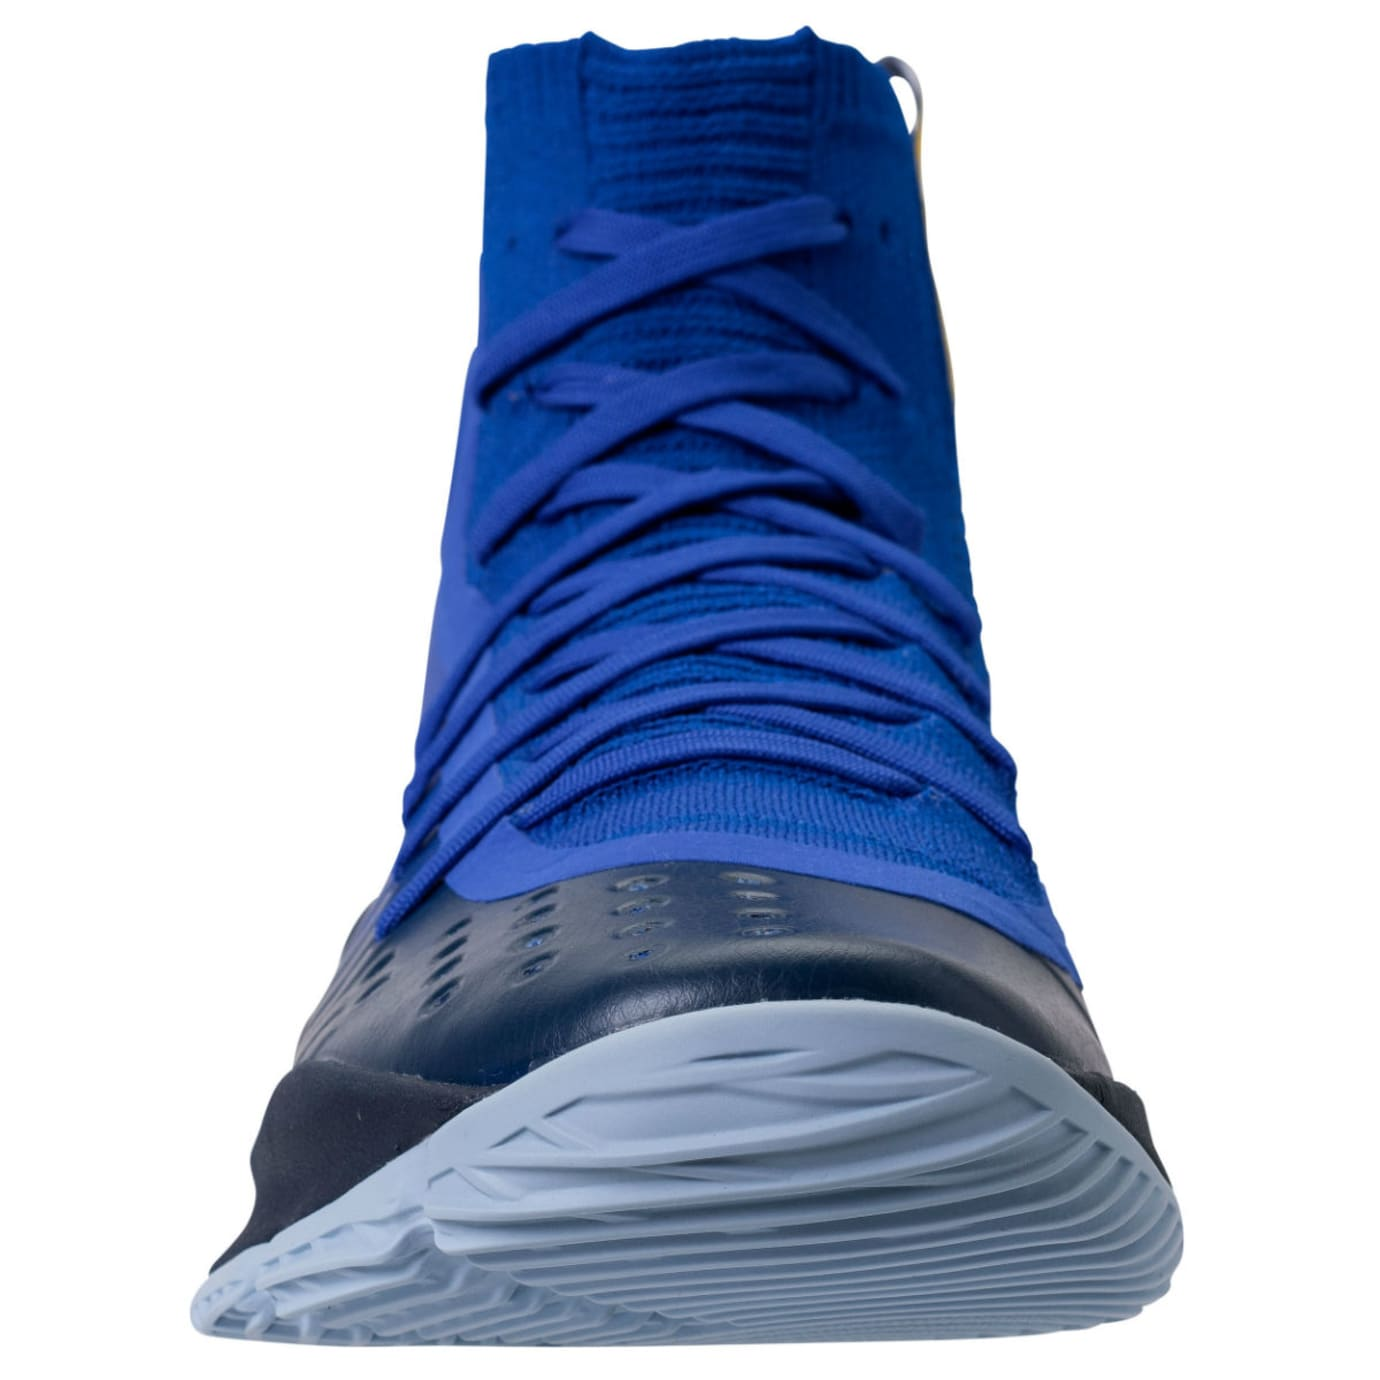 Under Armour Curry 4 Away Release Date 1298306-401 Front